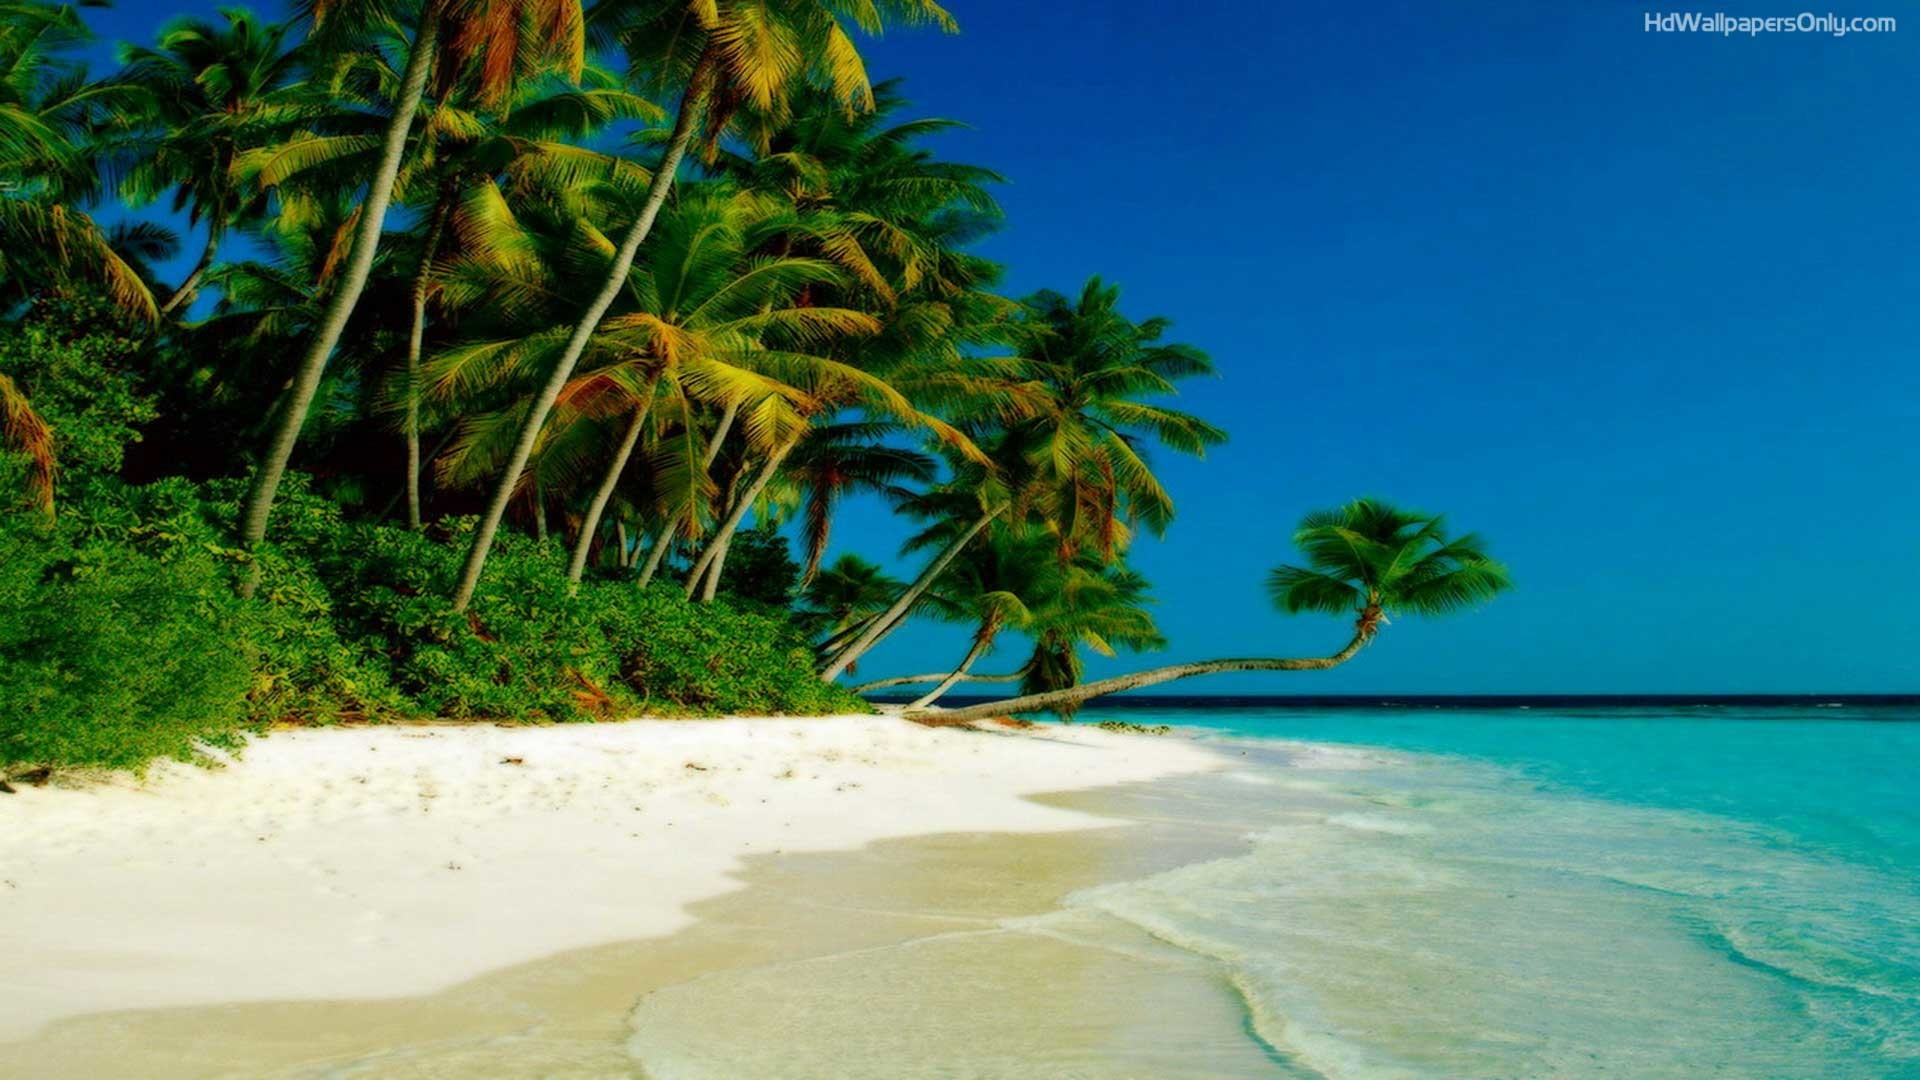 1920x1080 Beaches Islands HD Wallpapers Beach Desktop Backgrounds,Stock 1920×1080  Beach Hd Wallpaper (